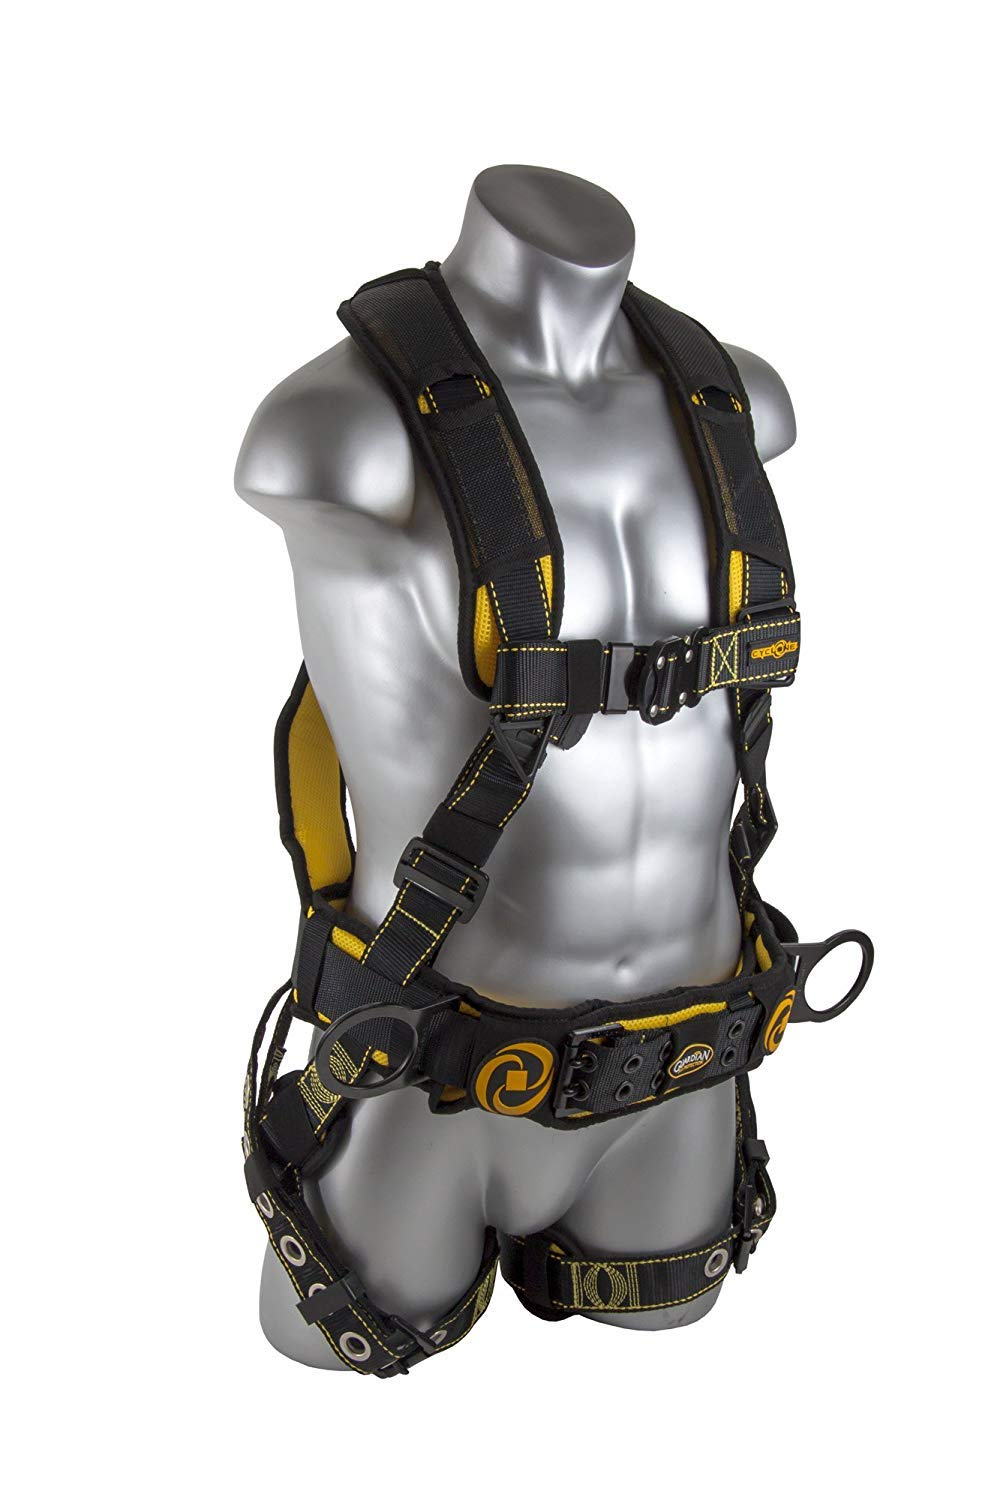 Guardian Fall Protection 21031 Cyclone Construction Harness with QC Chest/TB Leg/TB Waist Belt/Side D-Rings, Black/Yellow (2 Pack)